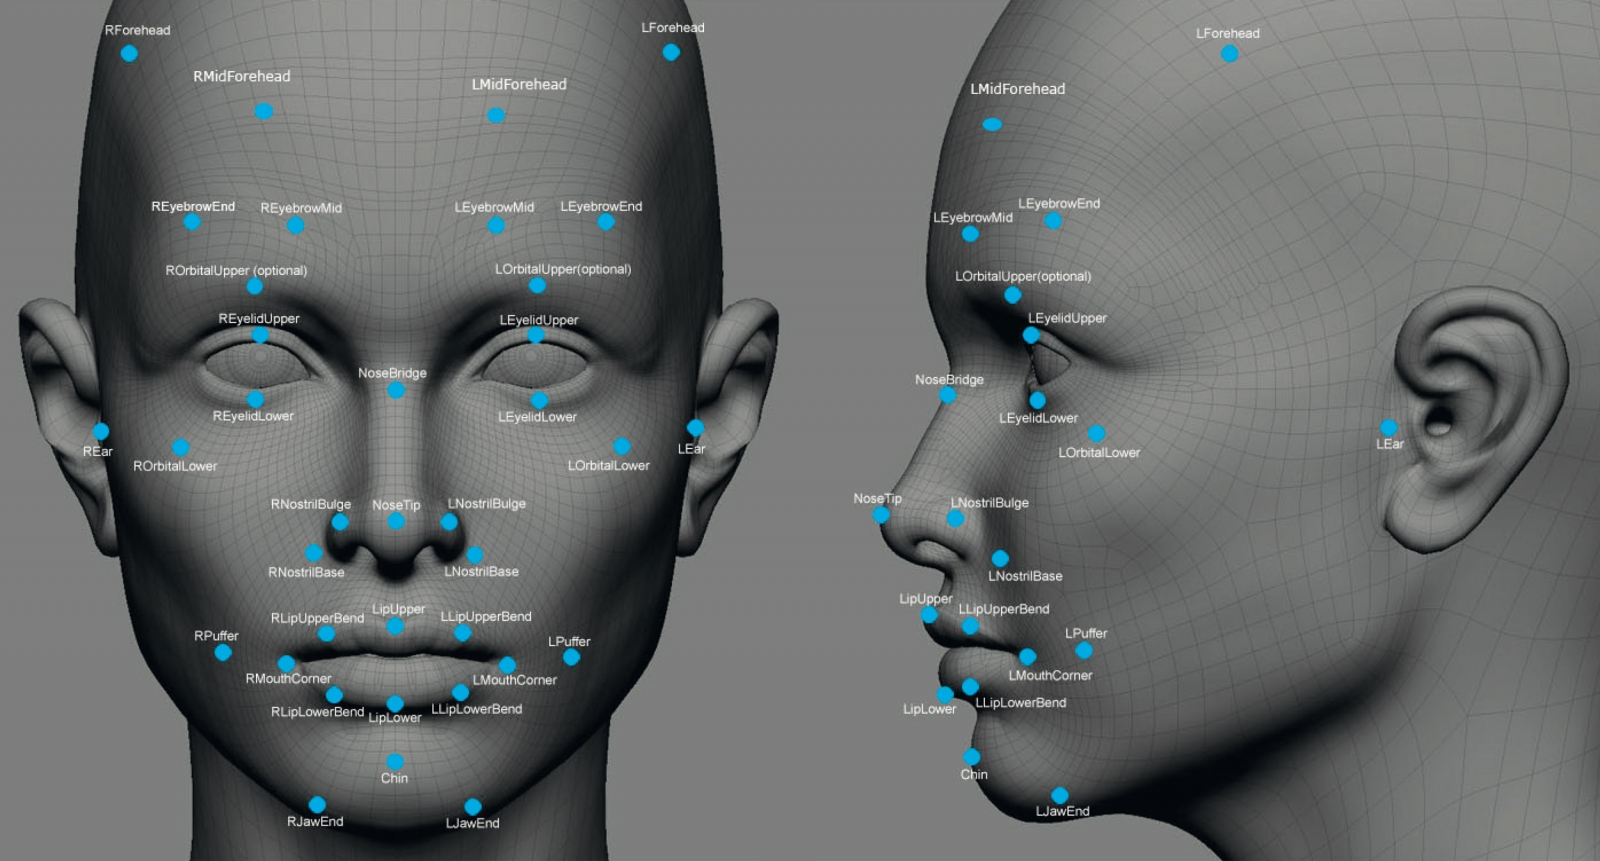 3D modelling map of facial recognition points